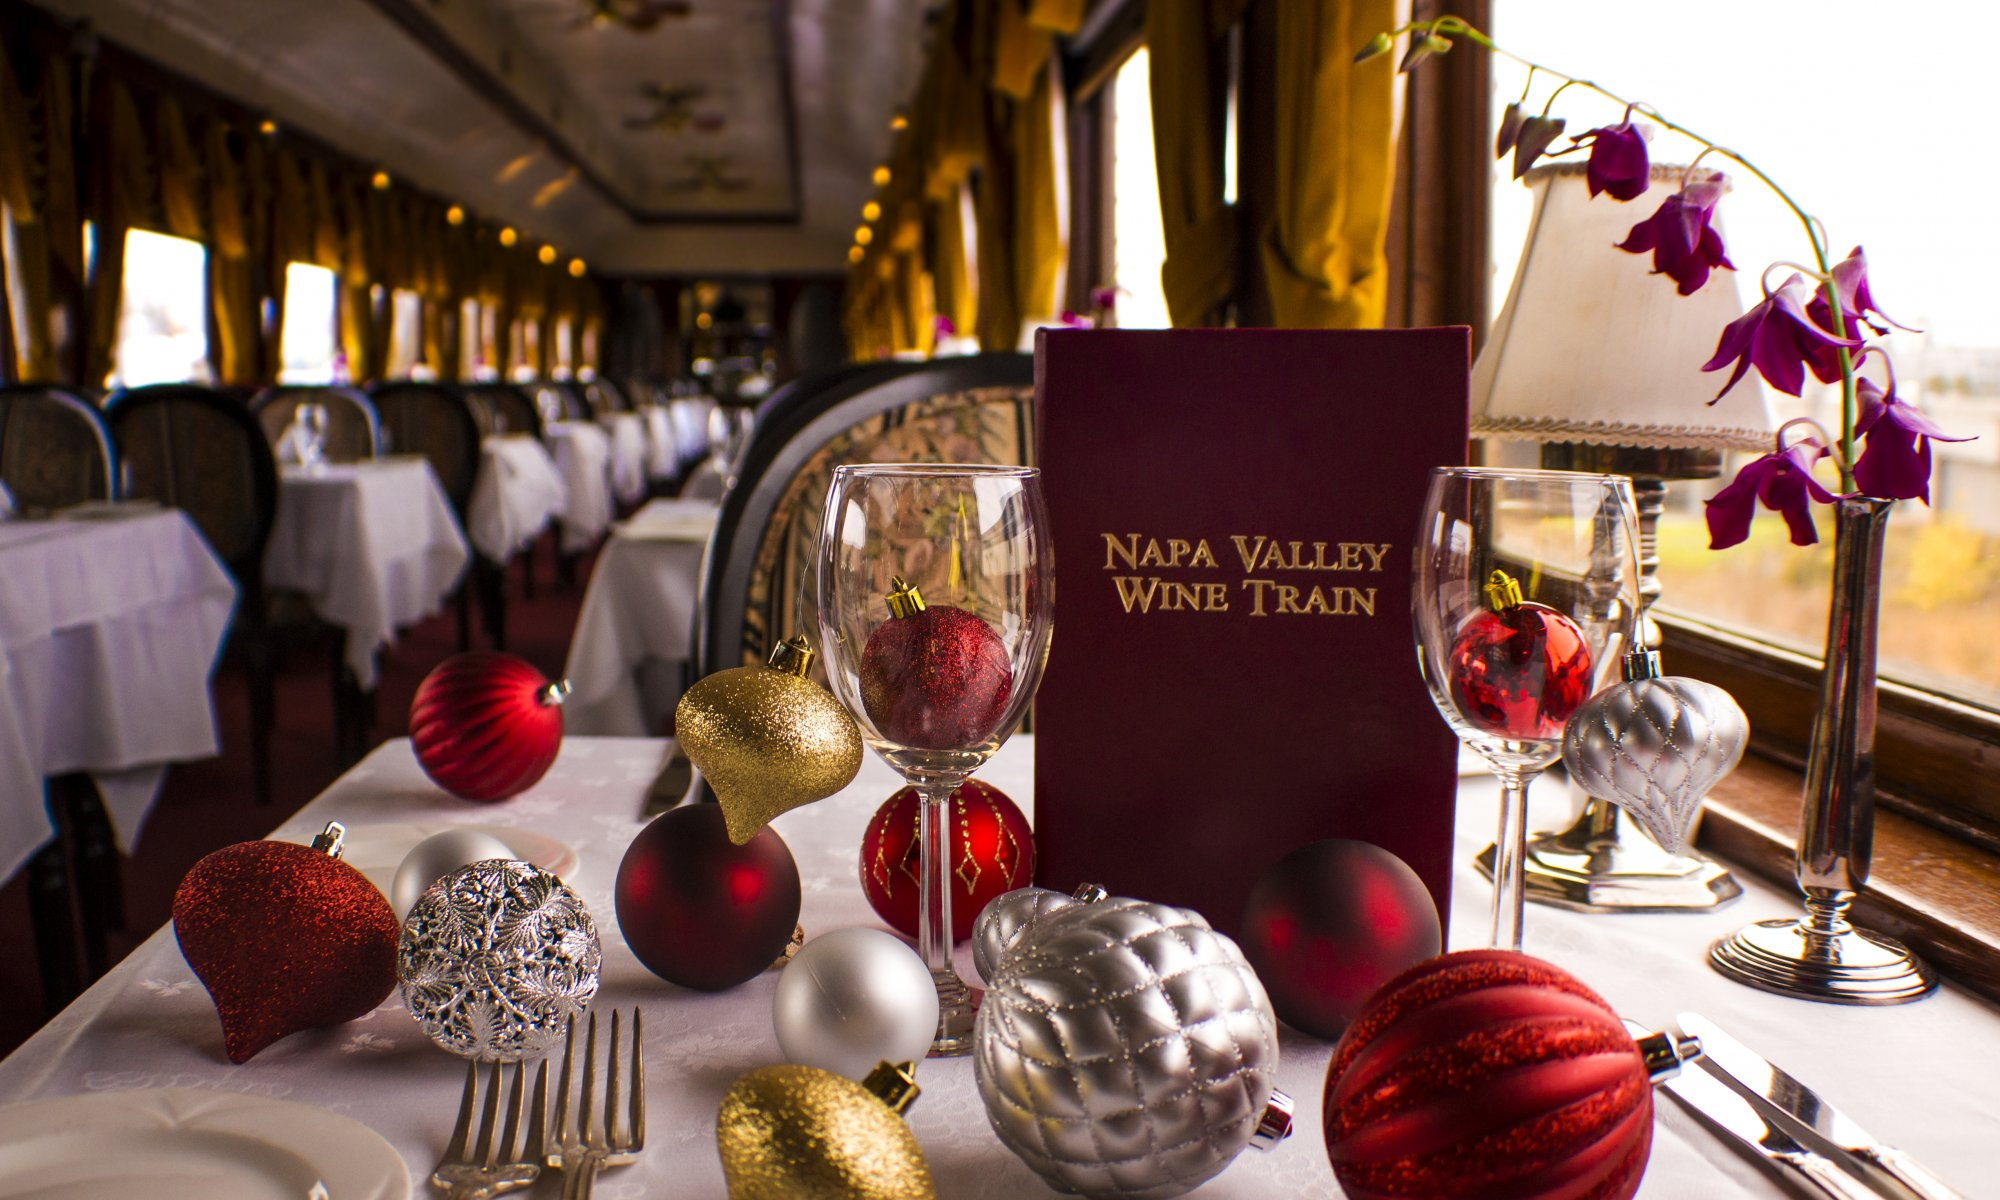 Christmas table decor on the Napa Valley Wine Train